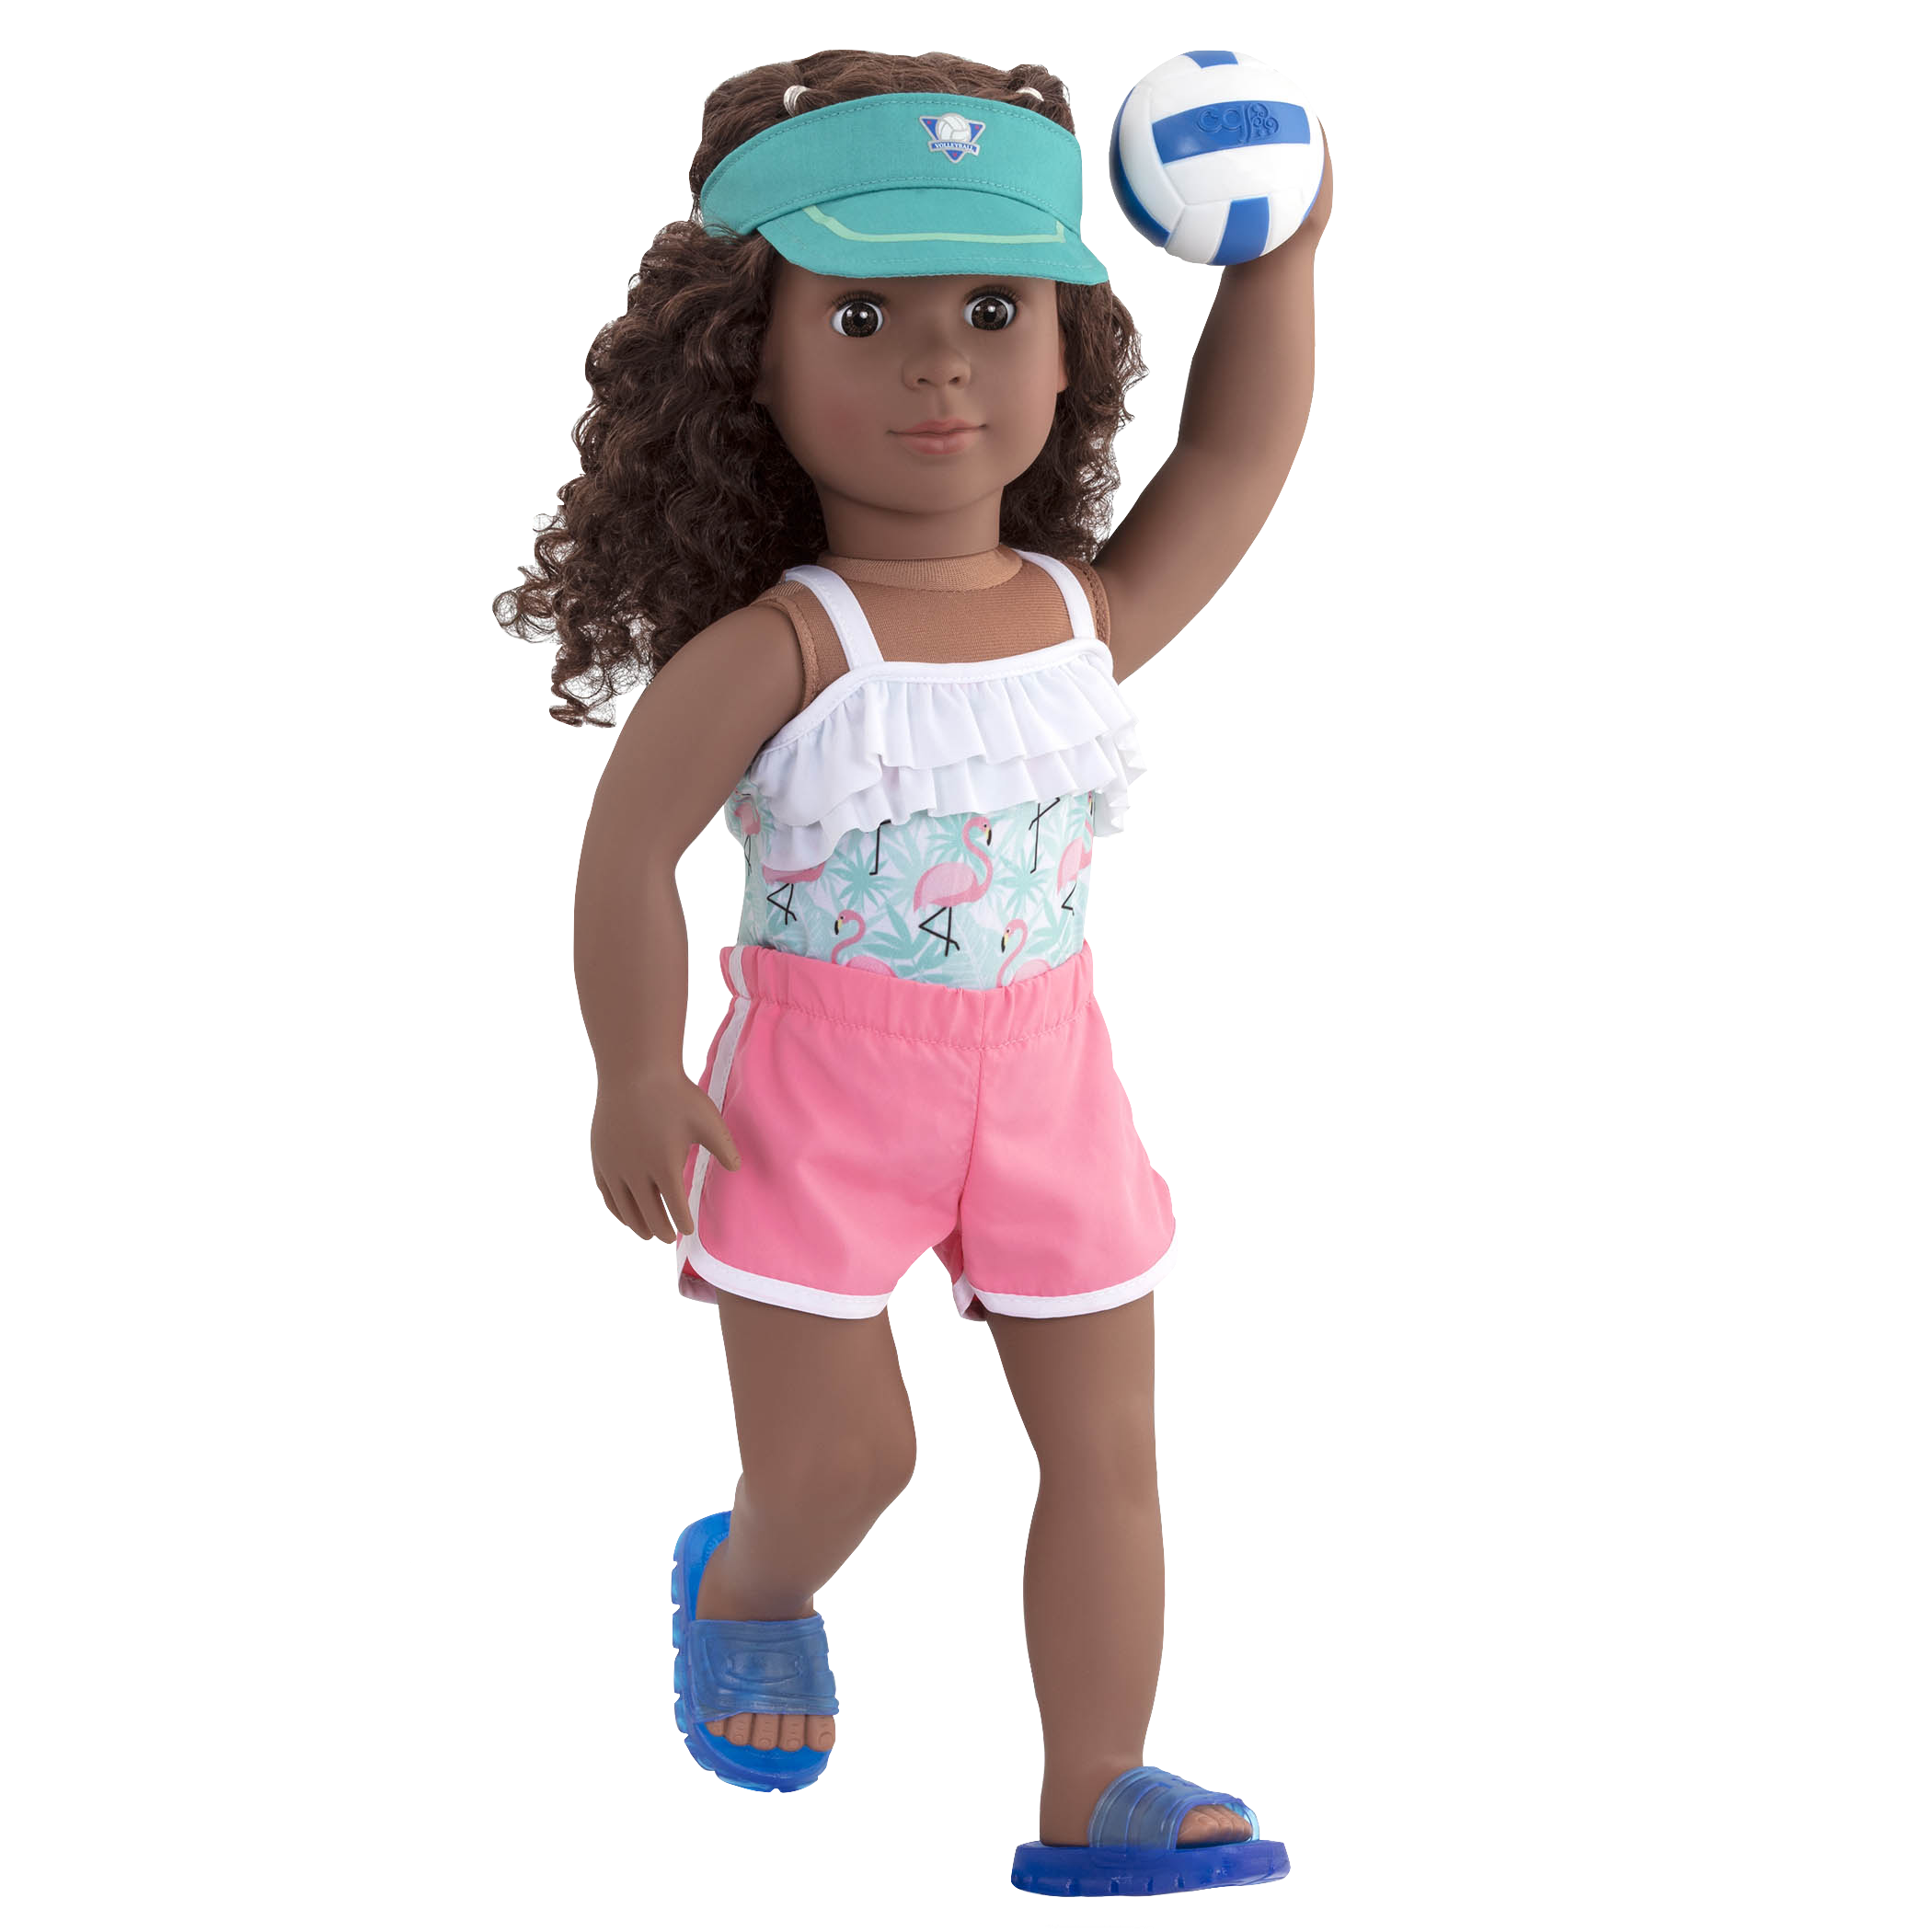 Ace Attire volleyball outfit Dedra raising ball